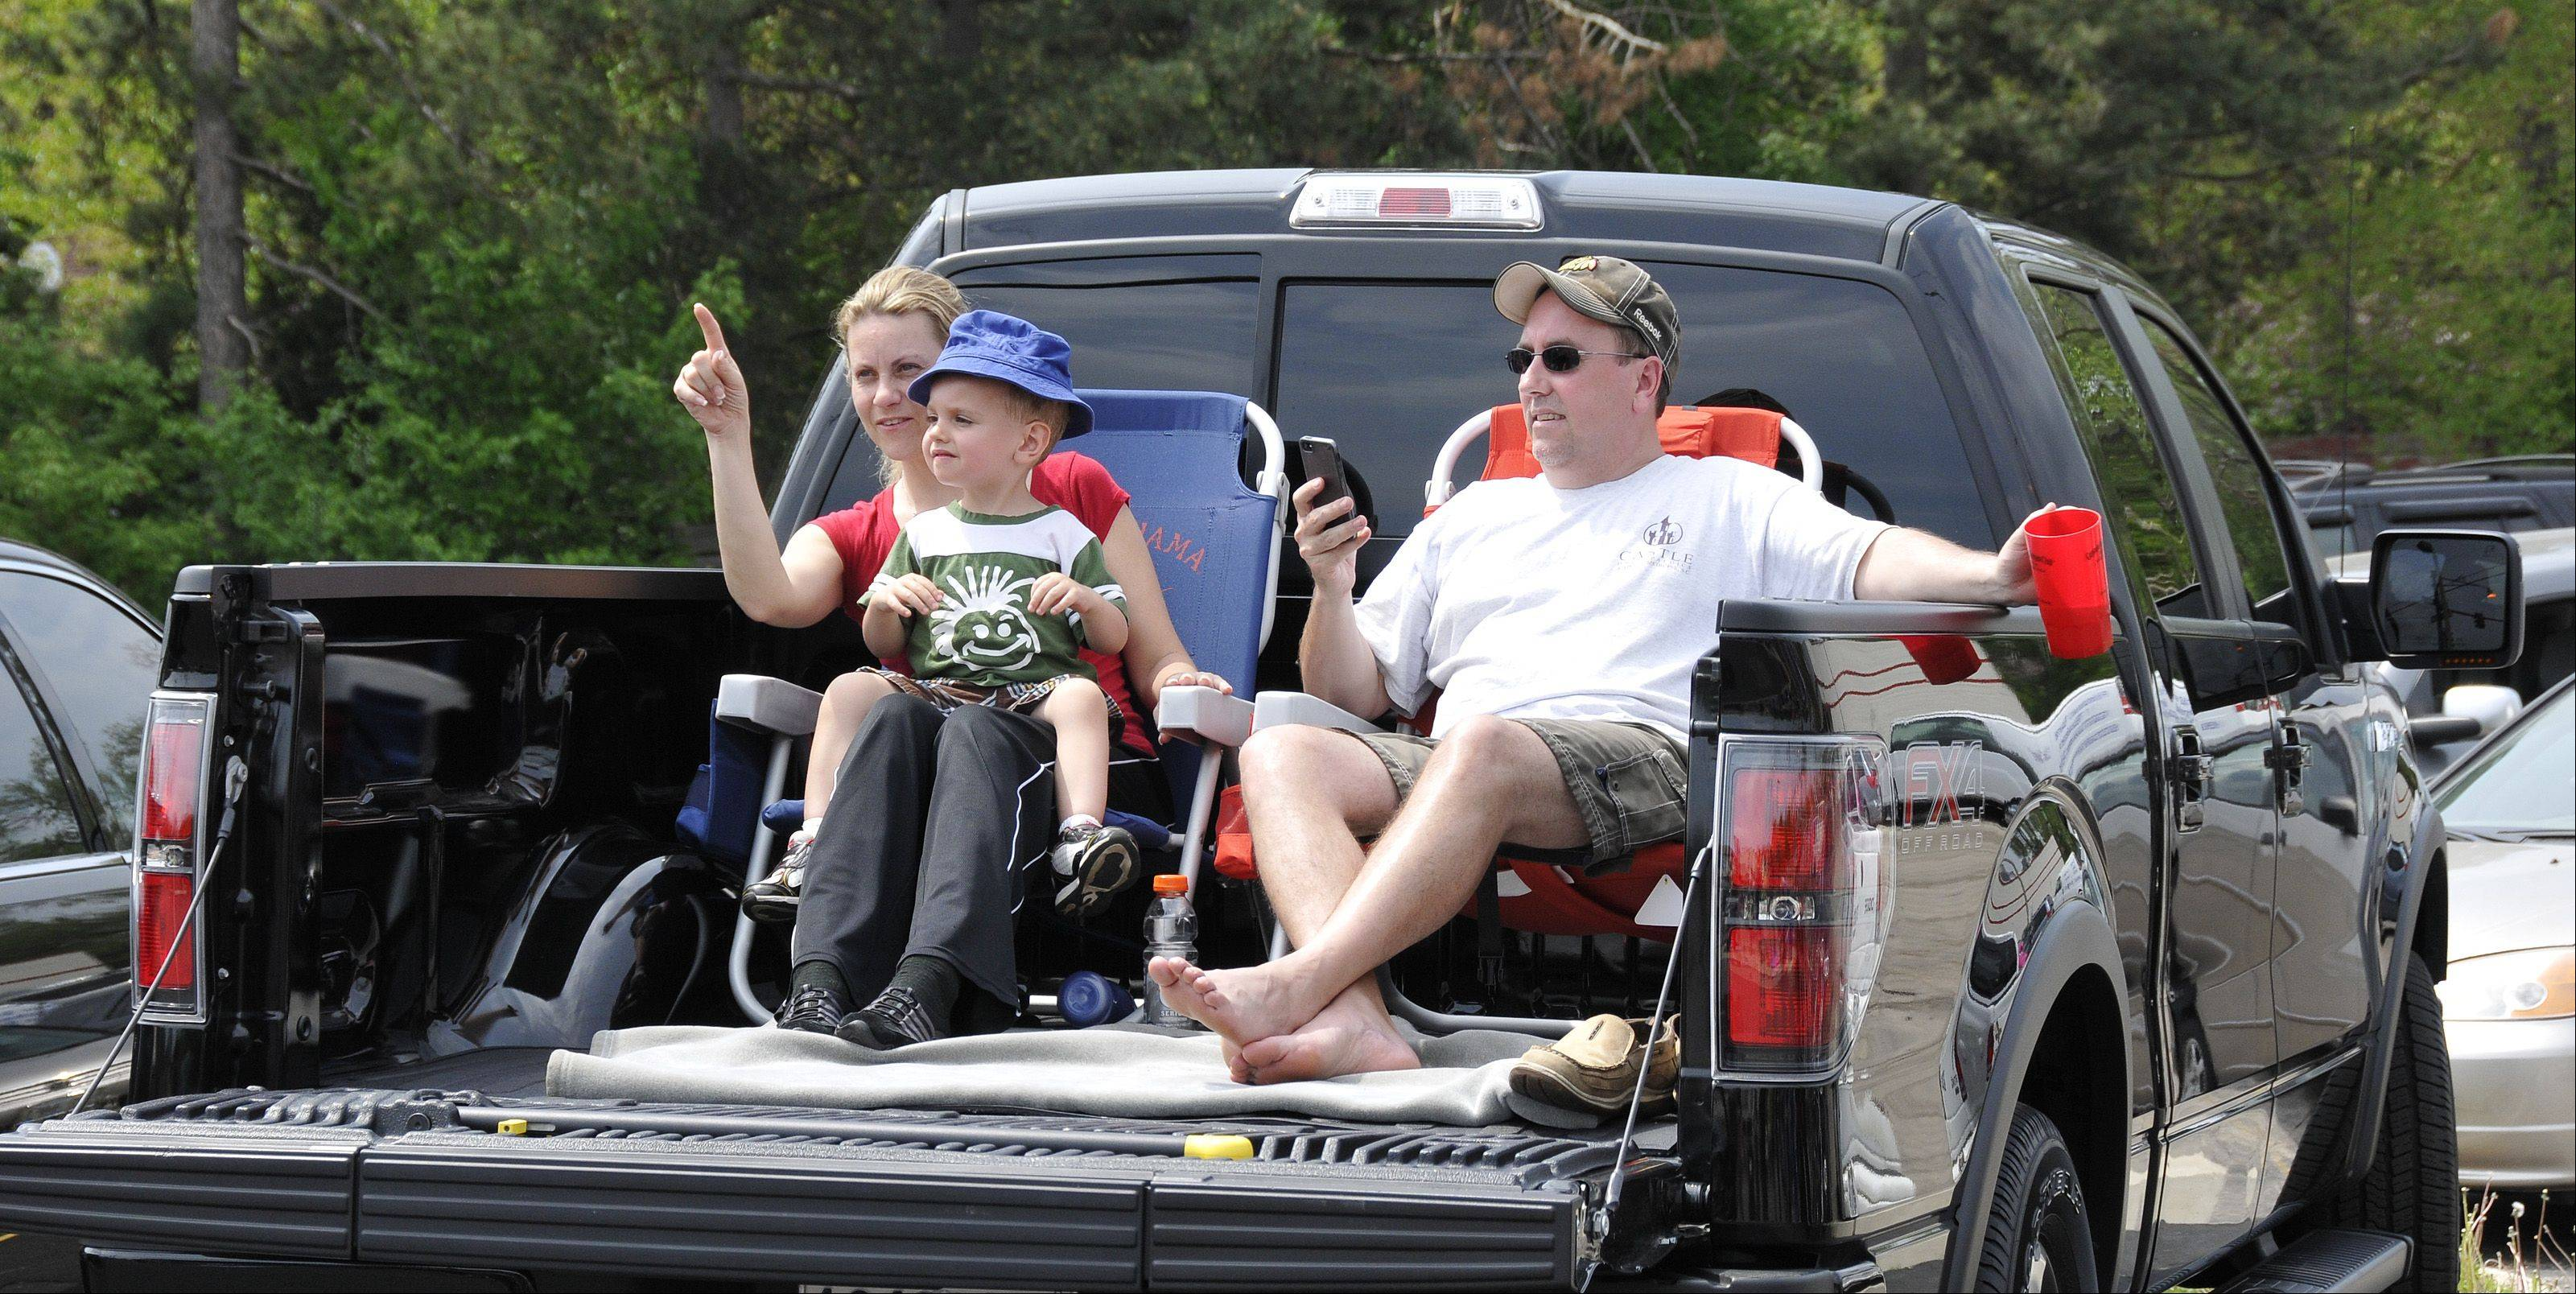 Dawn and Dane Paulsen, along with their son, Chase, put their pickup truck to good use on the parade route during Sunday's Lilac Parade in Lombard.